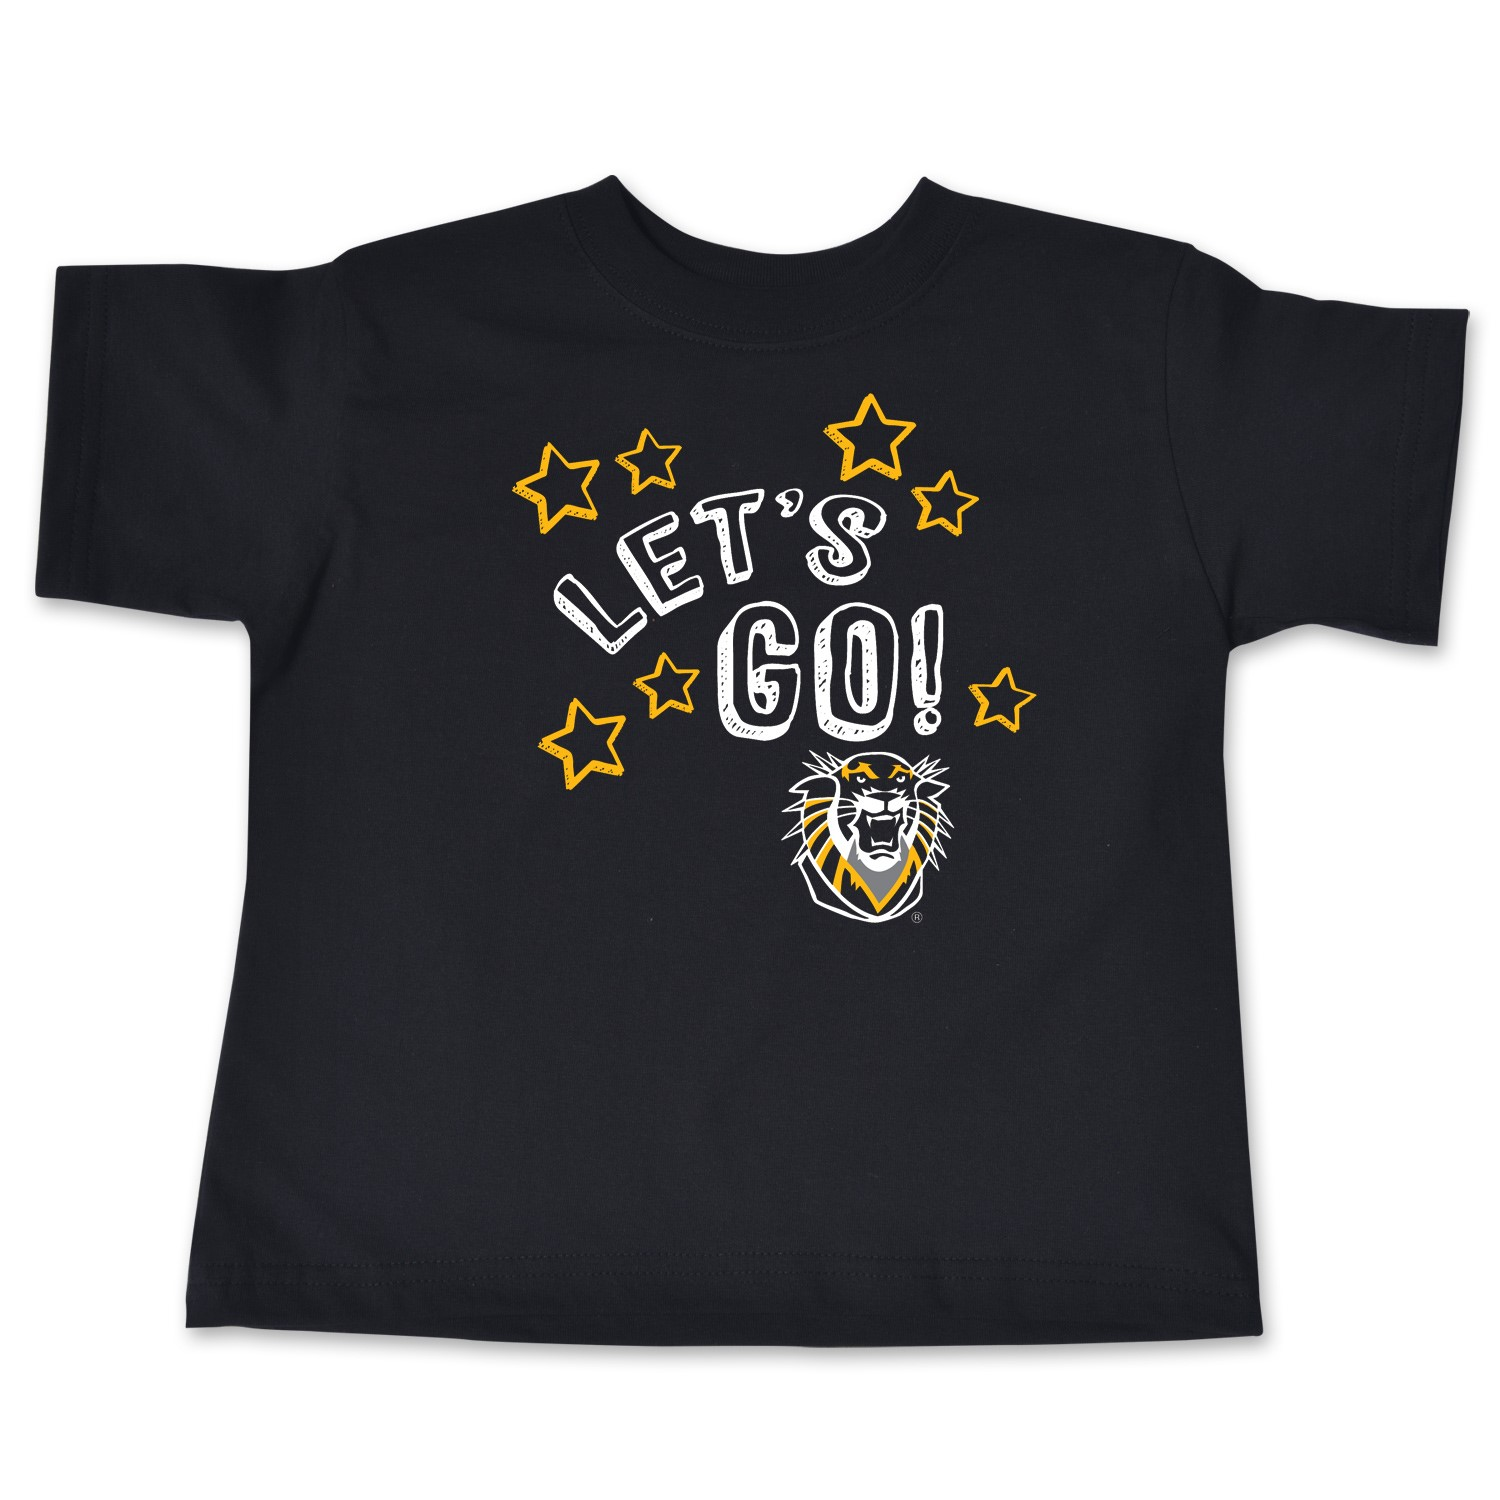 Image for the Toddler Short Sleeve Tee, Let's Go! Stars with Mascot, Black, College Kids product